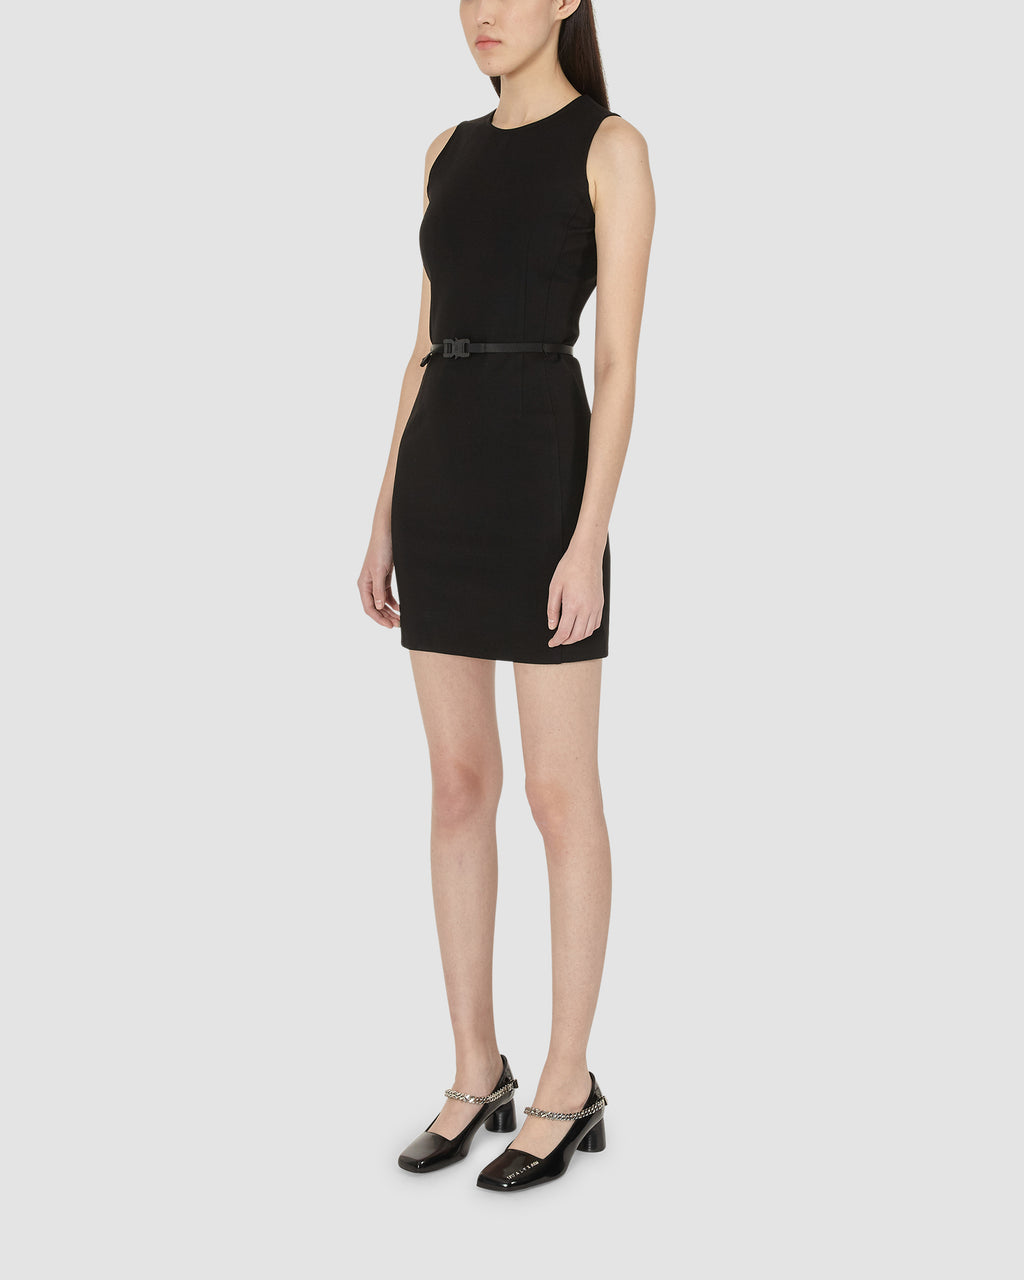 1017 ALYX 9SM | BLACK DRESS WITH MINI BELT | Dress | Black, Dresses, Google Shopping, S20, S20EXSH, Woman, WOMEN